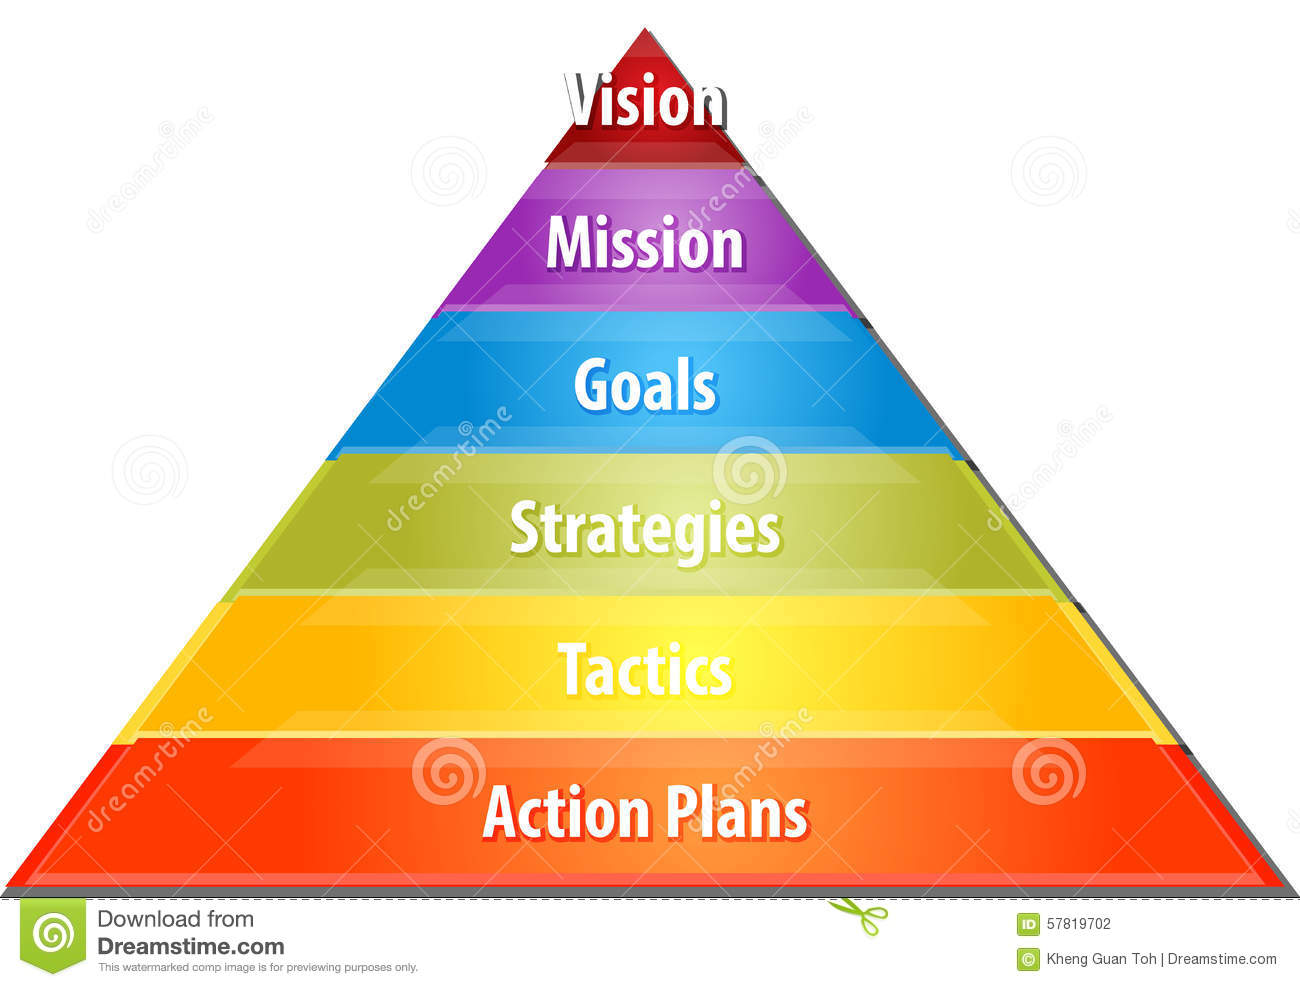 Vision Strategy Pyramid Business Diagram Illustration